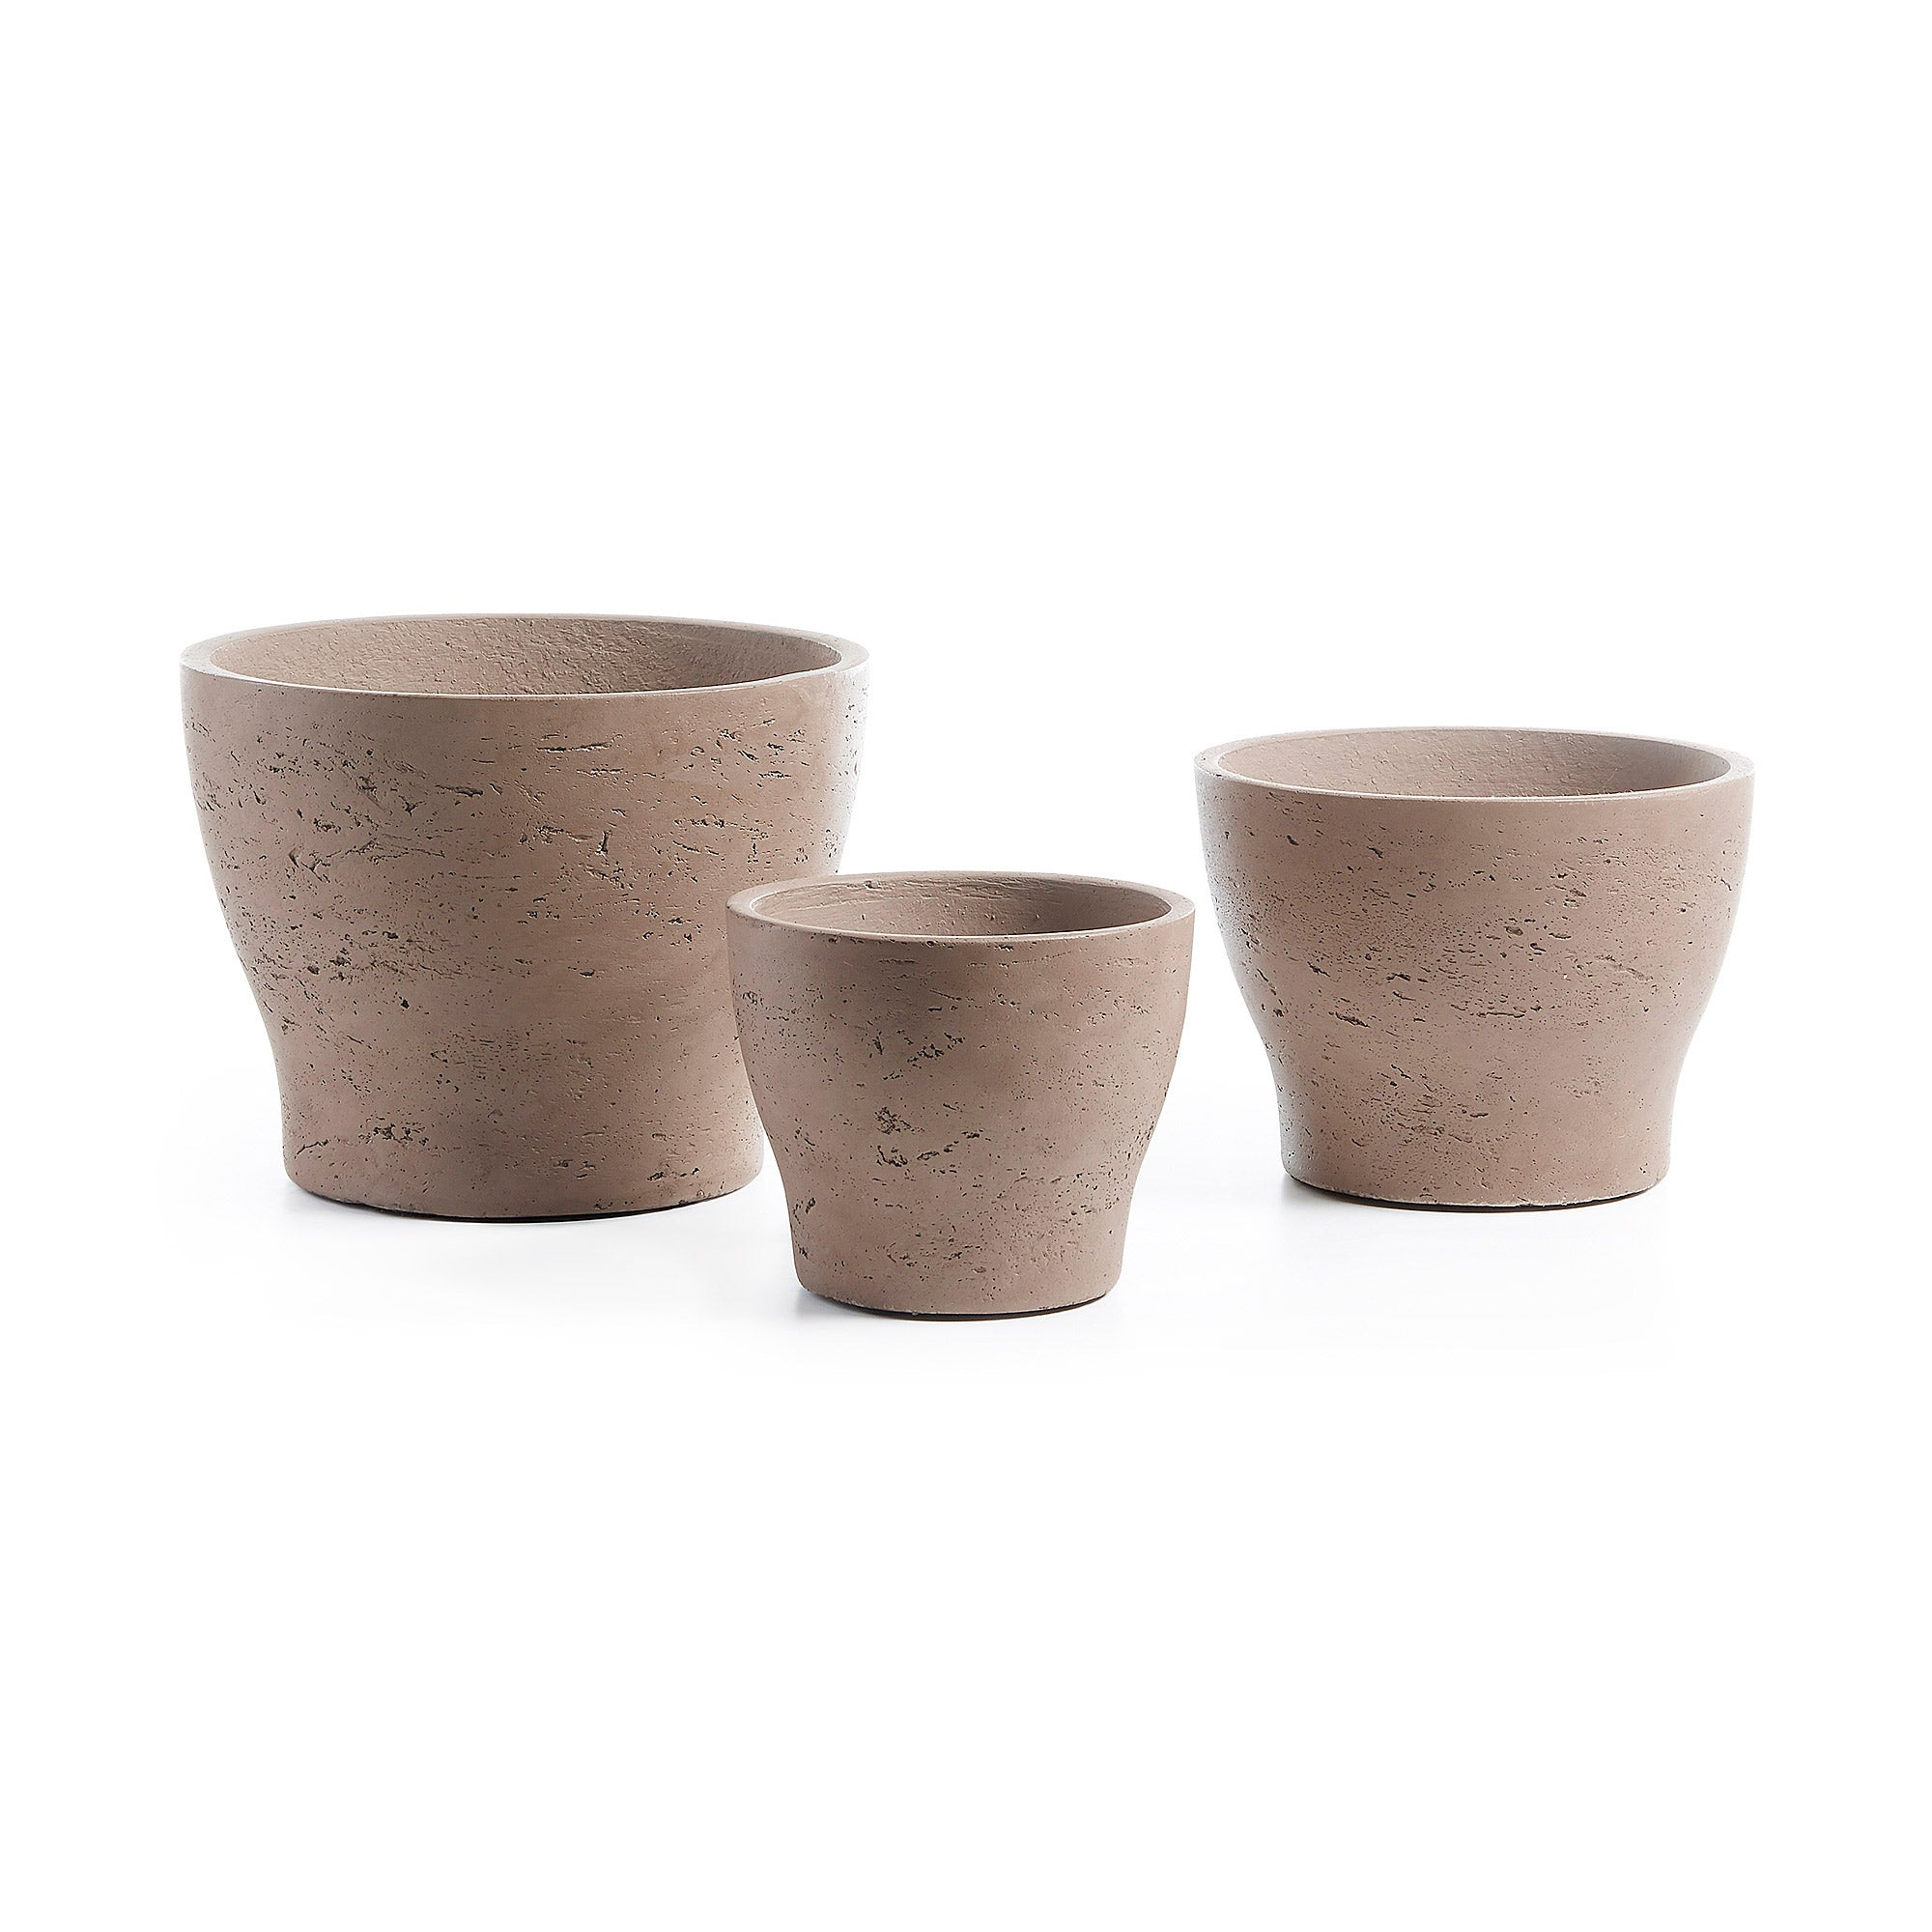 Xul Set of 3 Planters Cement Beige, Decor - Home-Buy Interiors